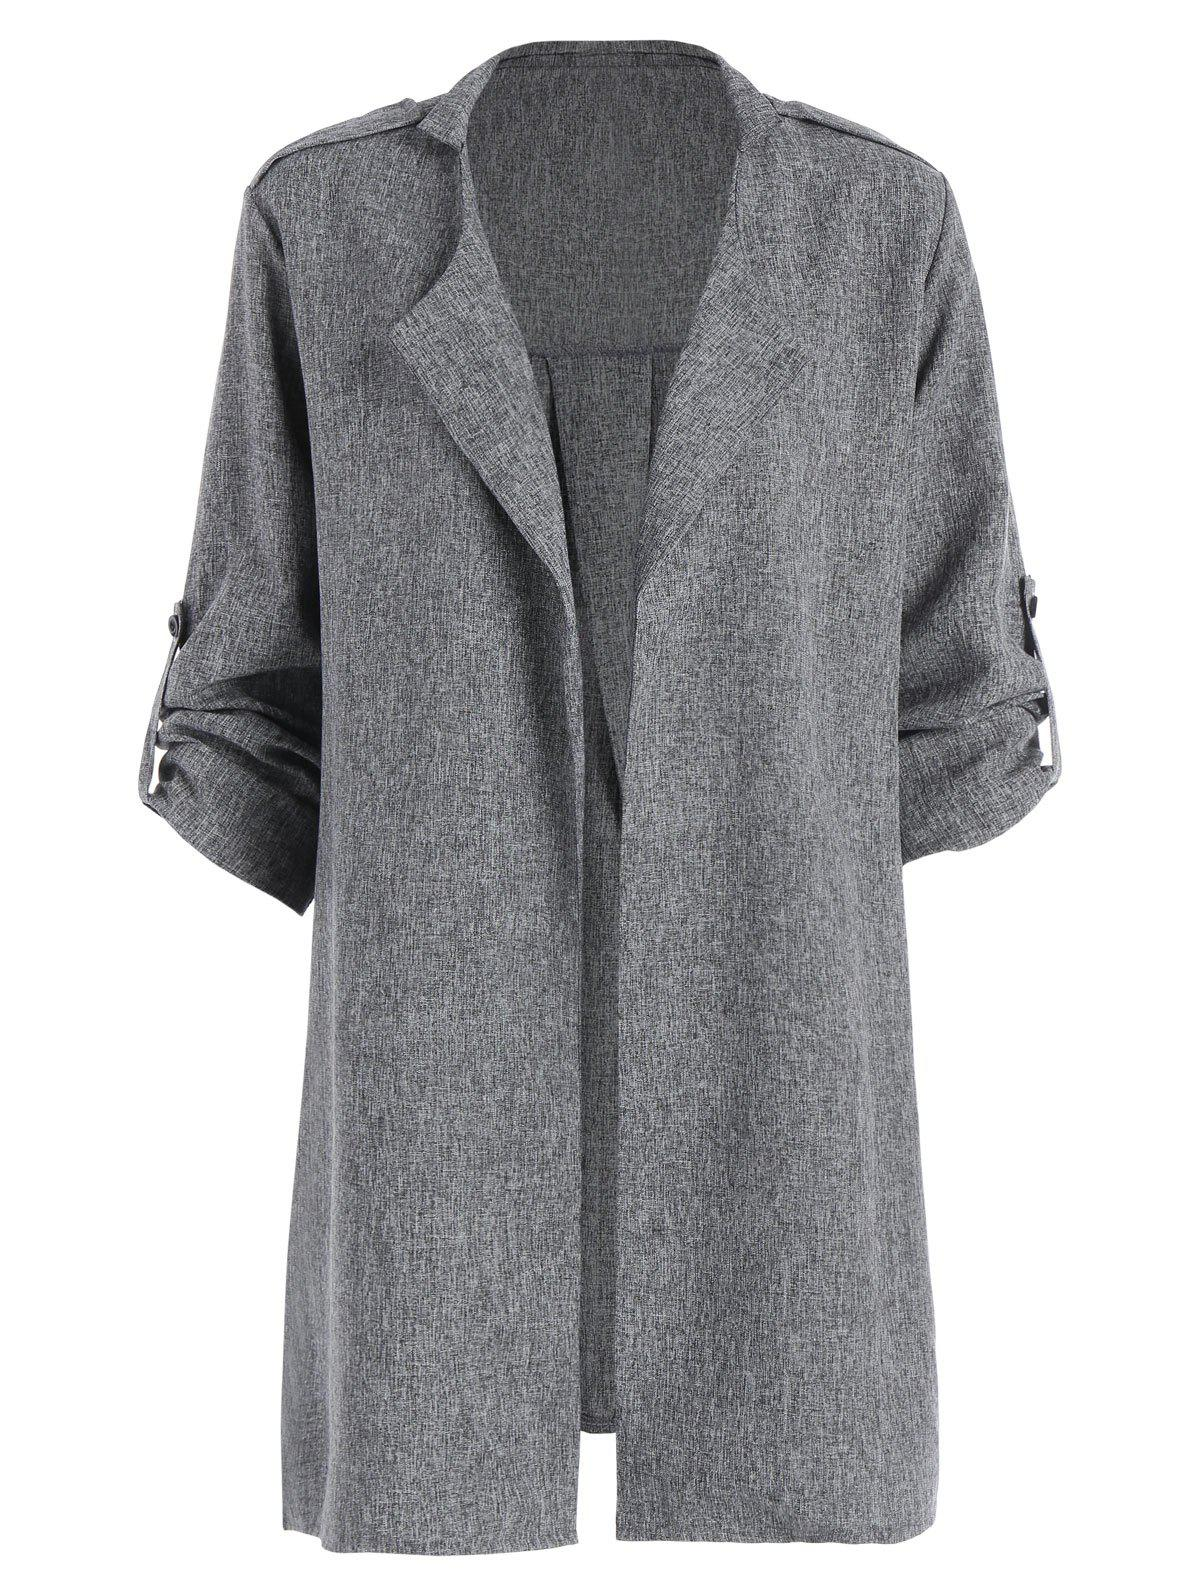 Marled Roll Sleeve Plus Size Long Trench CoatWOMEN<br><br>Size: 5XL; Color: GRAY; Clothes Type: Trench; Material: Polyester; Type: Slim; Shirt Length: Long; Sleeve Length: Full; Collar: Turn-down Collar; Pattern Type: Solid; Style: Fashion; Season: Fall,Spring,Winter; Weight: 0.3300kg; Package Contents: 1 x Coat;